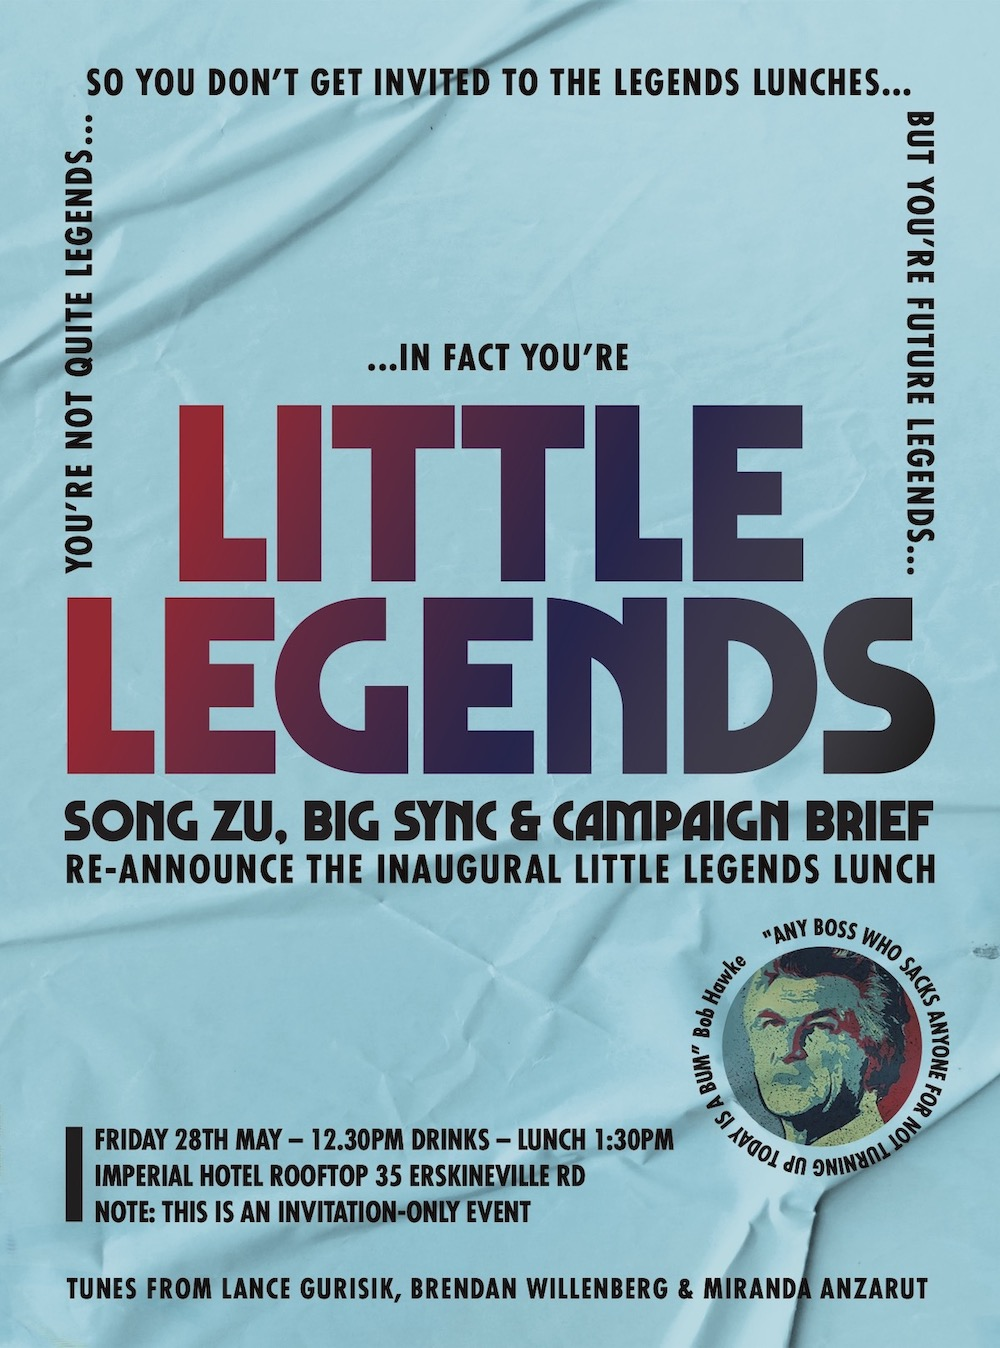 UPDATE: Song Zu, Big Sync and CB to hold Little Legends Lunch on May 28, Imperial Hotel, Sydney